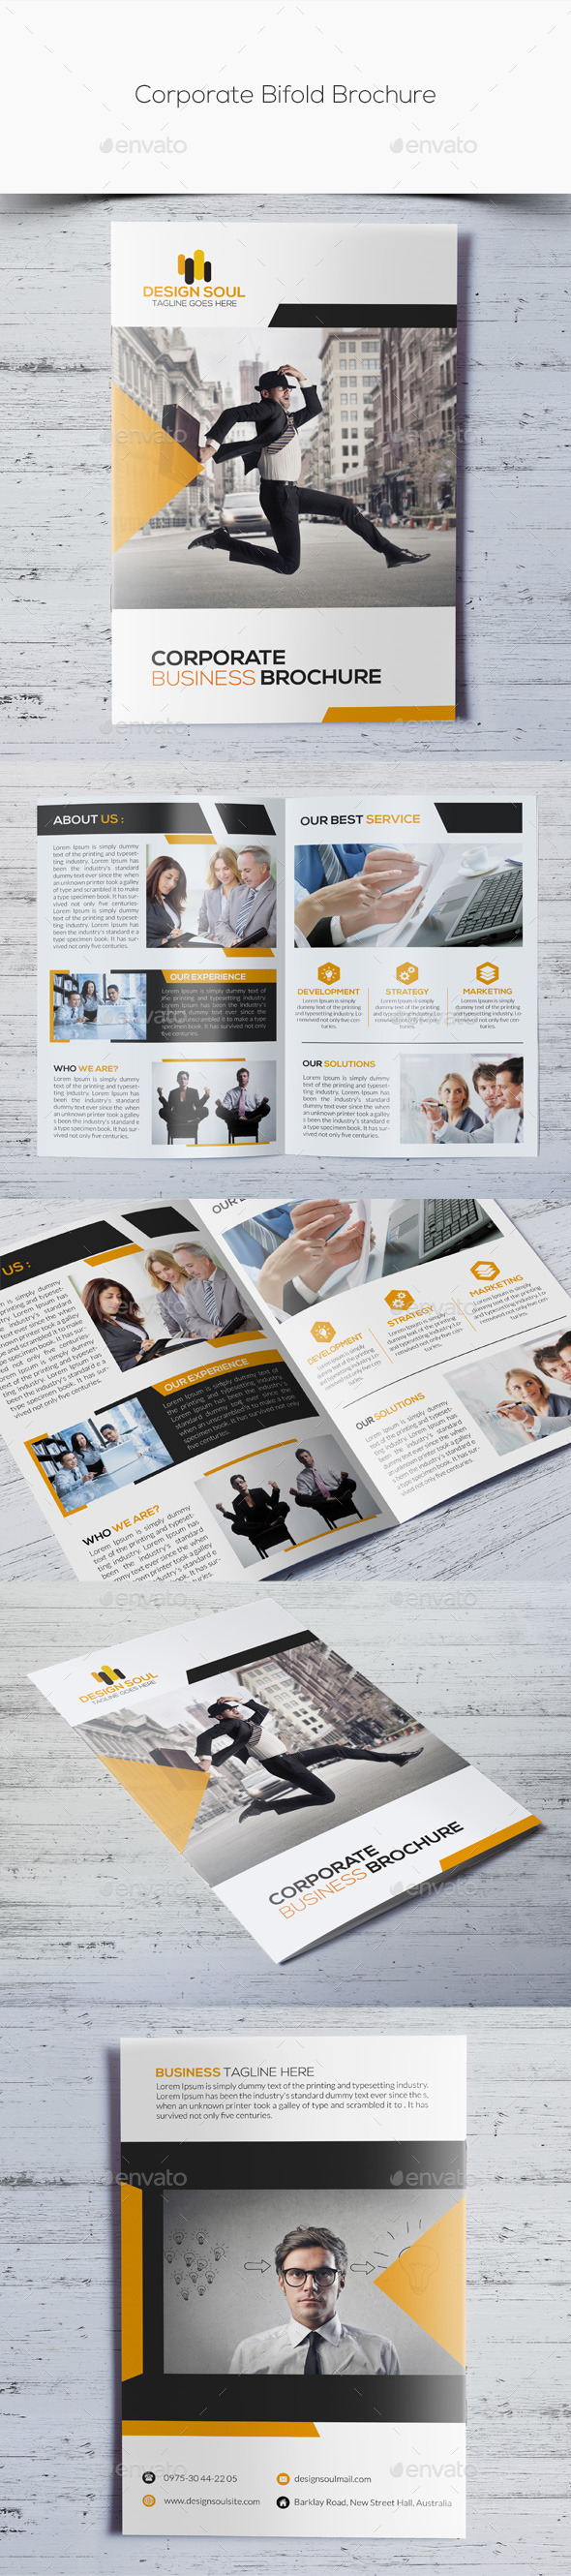 GraphicRiver Corporate Bifold Brochure 10908783